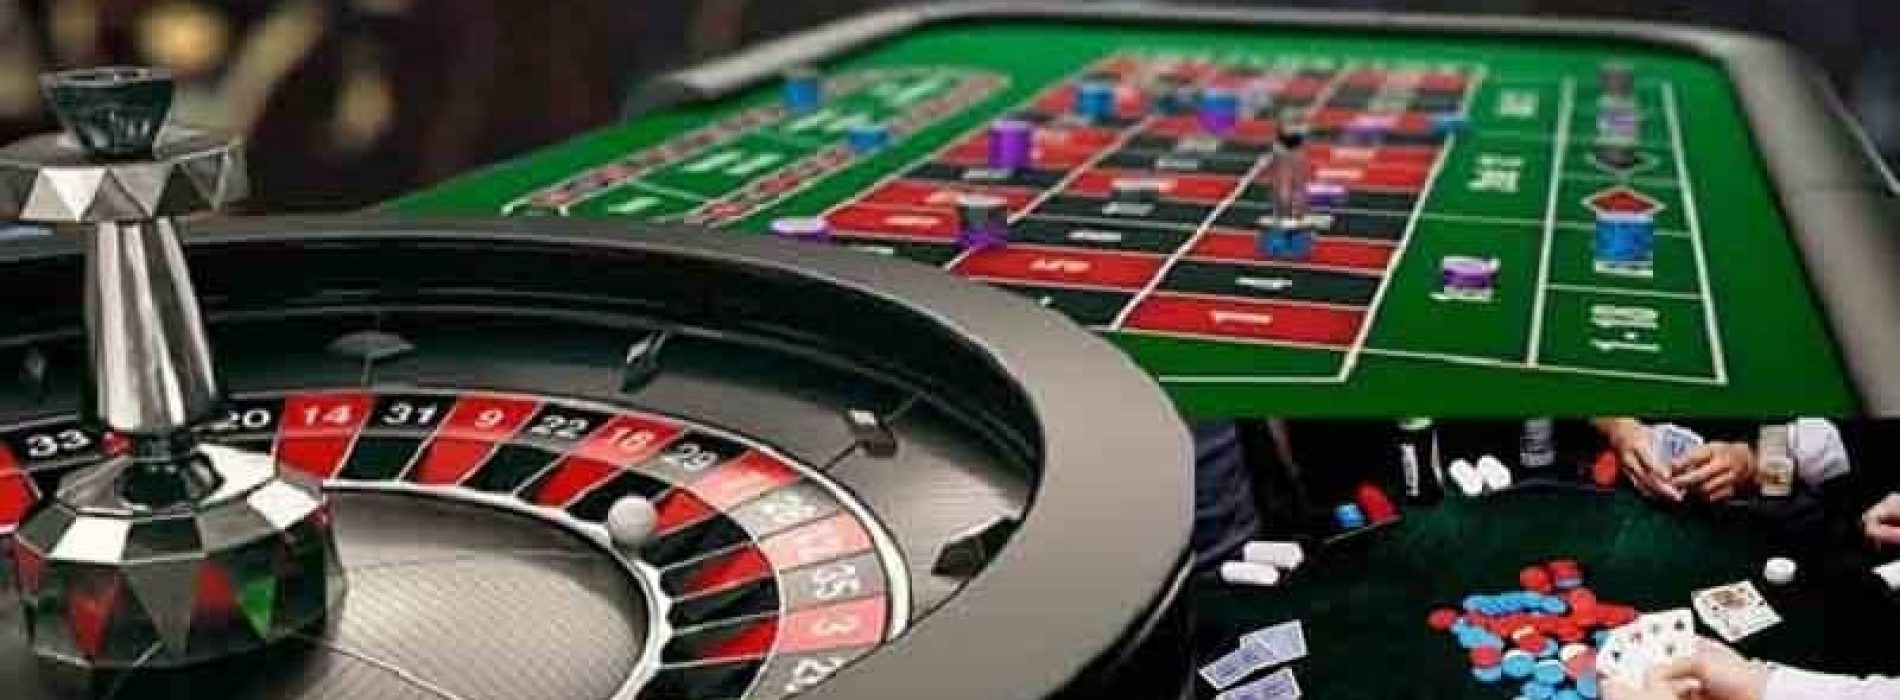 Few facts that will force to play poker online instead of going to land-based casinos